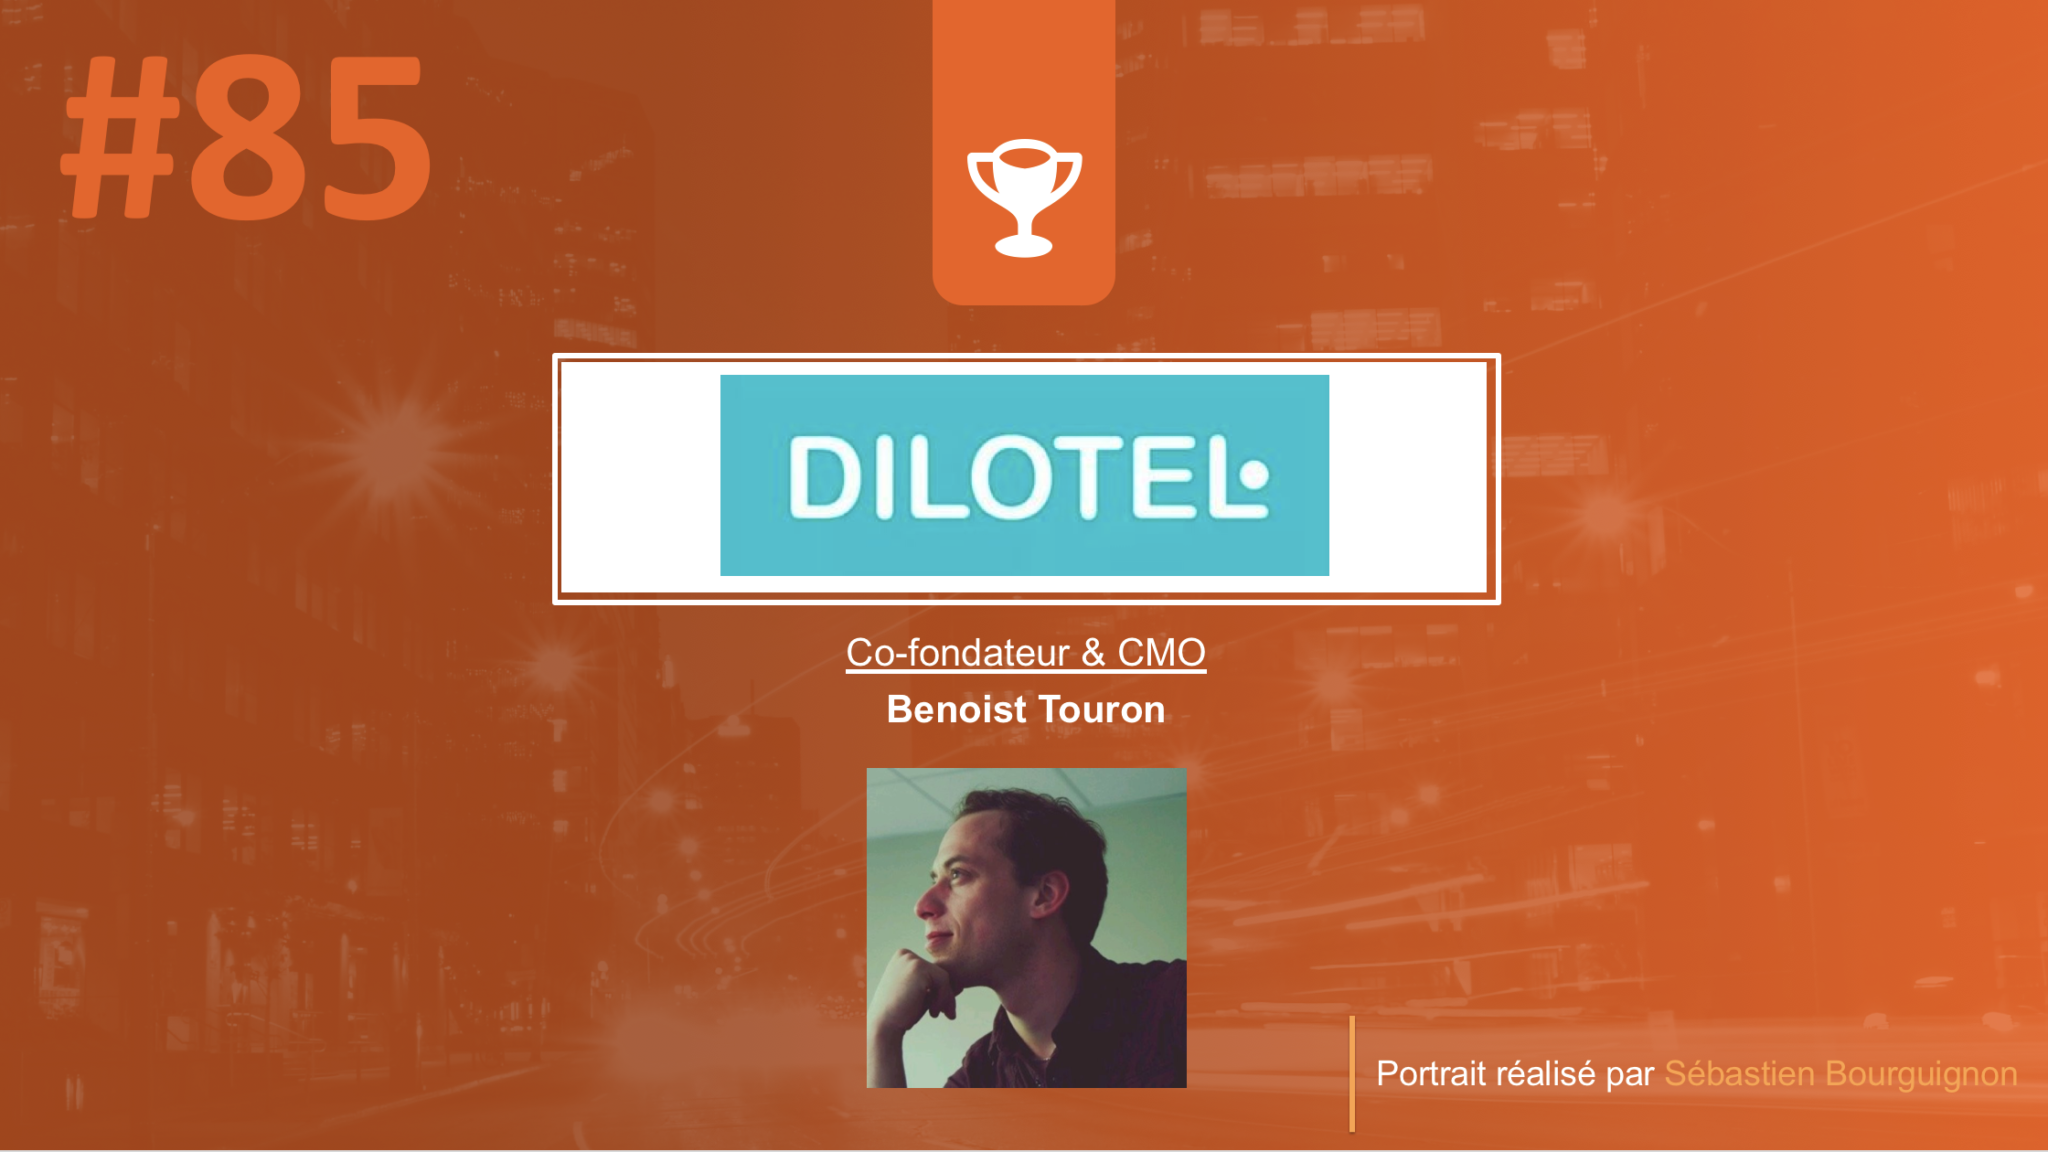 dilotel